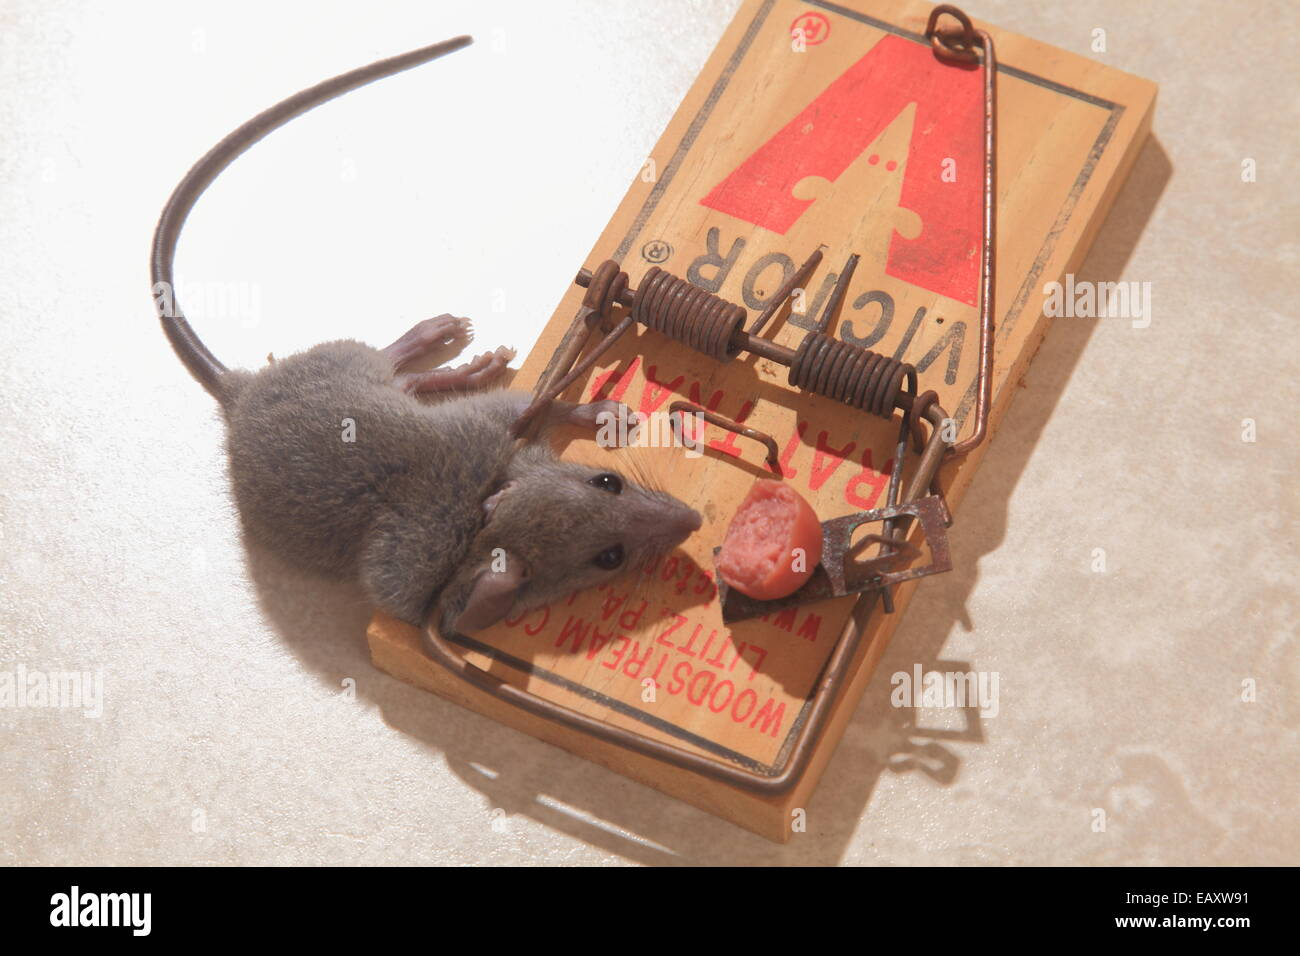 Mouse killed in Mousetrap - Stock Image